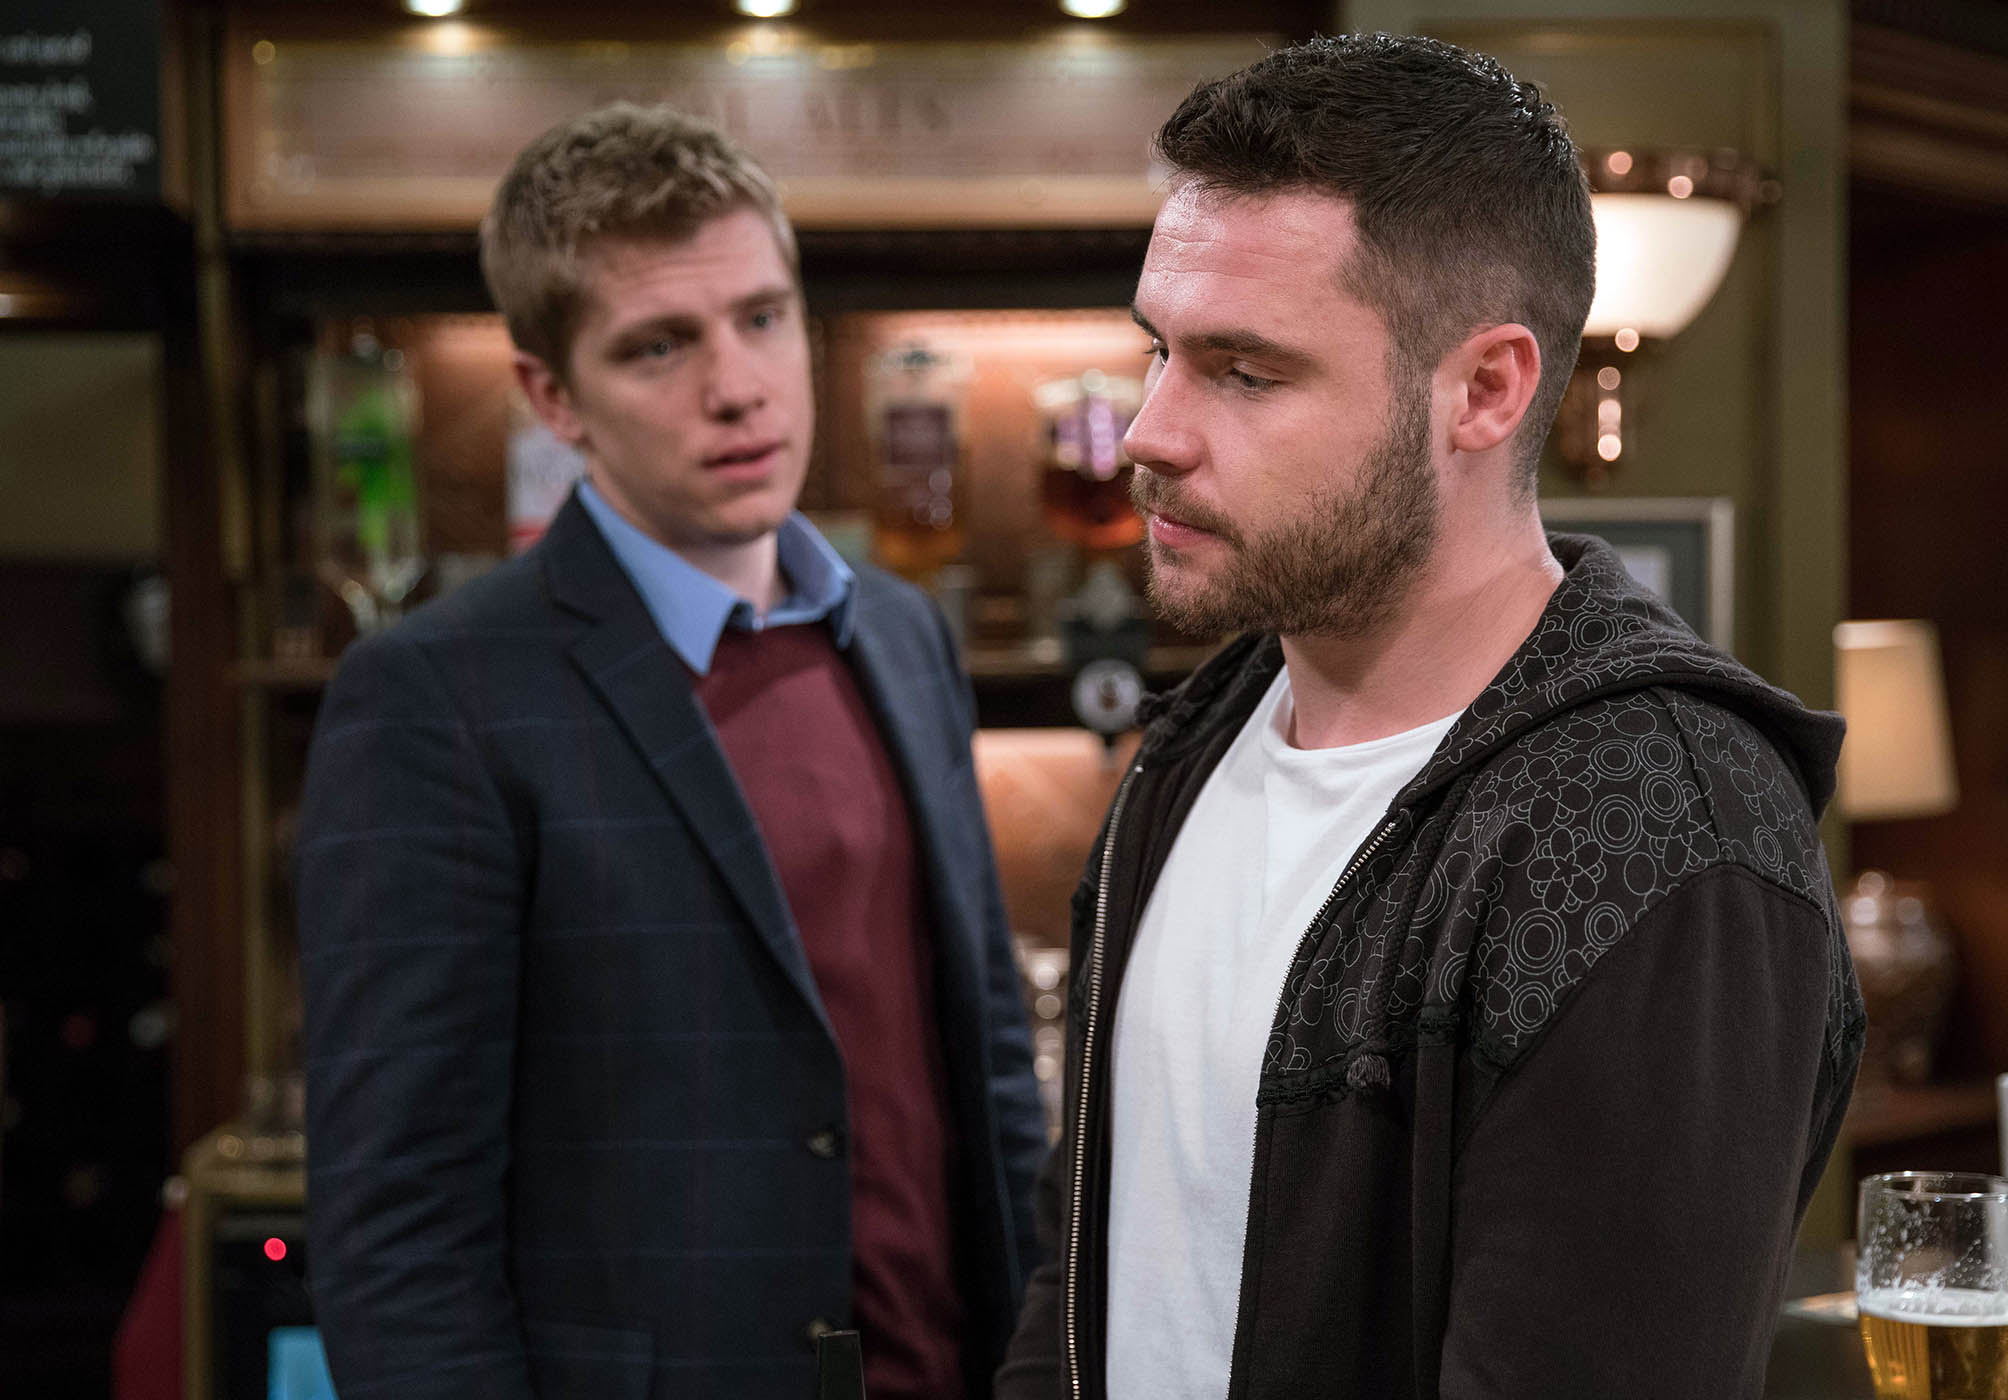 FROM ITV STRICT EMBARGO - No Use Tuesday 31 January 2017 Emmerdale - 7746 Friday 10 February 2016 Aaron Dingle in a manner which alters the visual appearance of the person photographed deemed detrimental or inappropriate by ITV plc Picture Desk. This photograph must not be syndicated to any other company, publication or website, or permanently archived, without the express written permission of ITV Plc Picture Desk. Full Terms and conditions are available on the website www.itvpictures.com